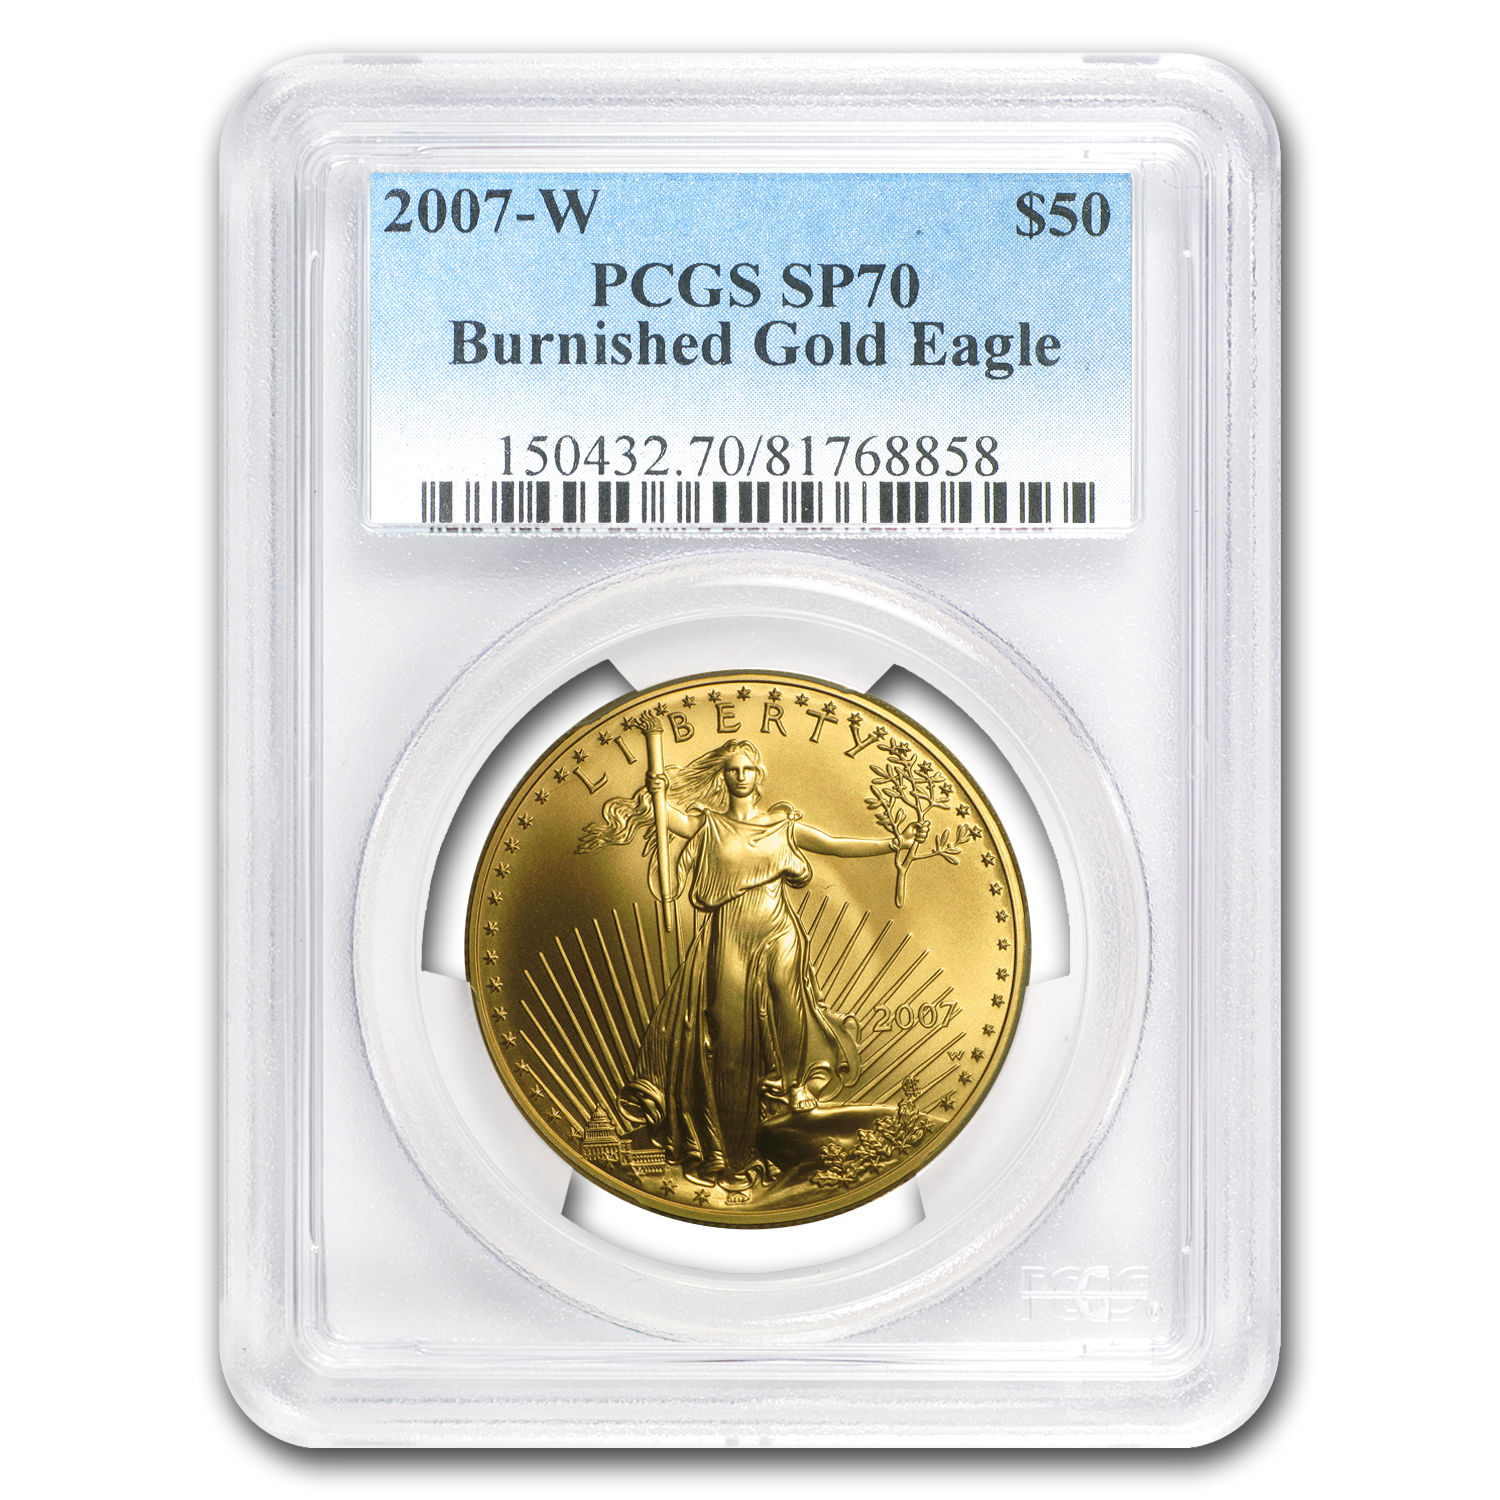 2007-W 1 oz Burnished Gold American Eagle MS-70 PCGS